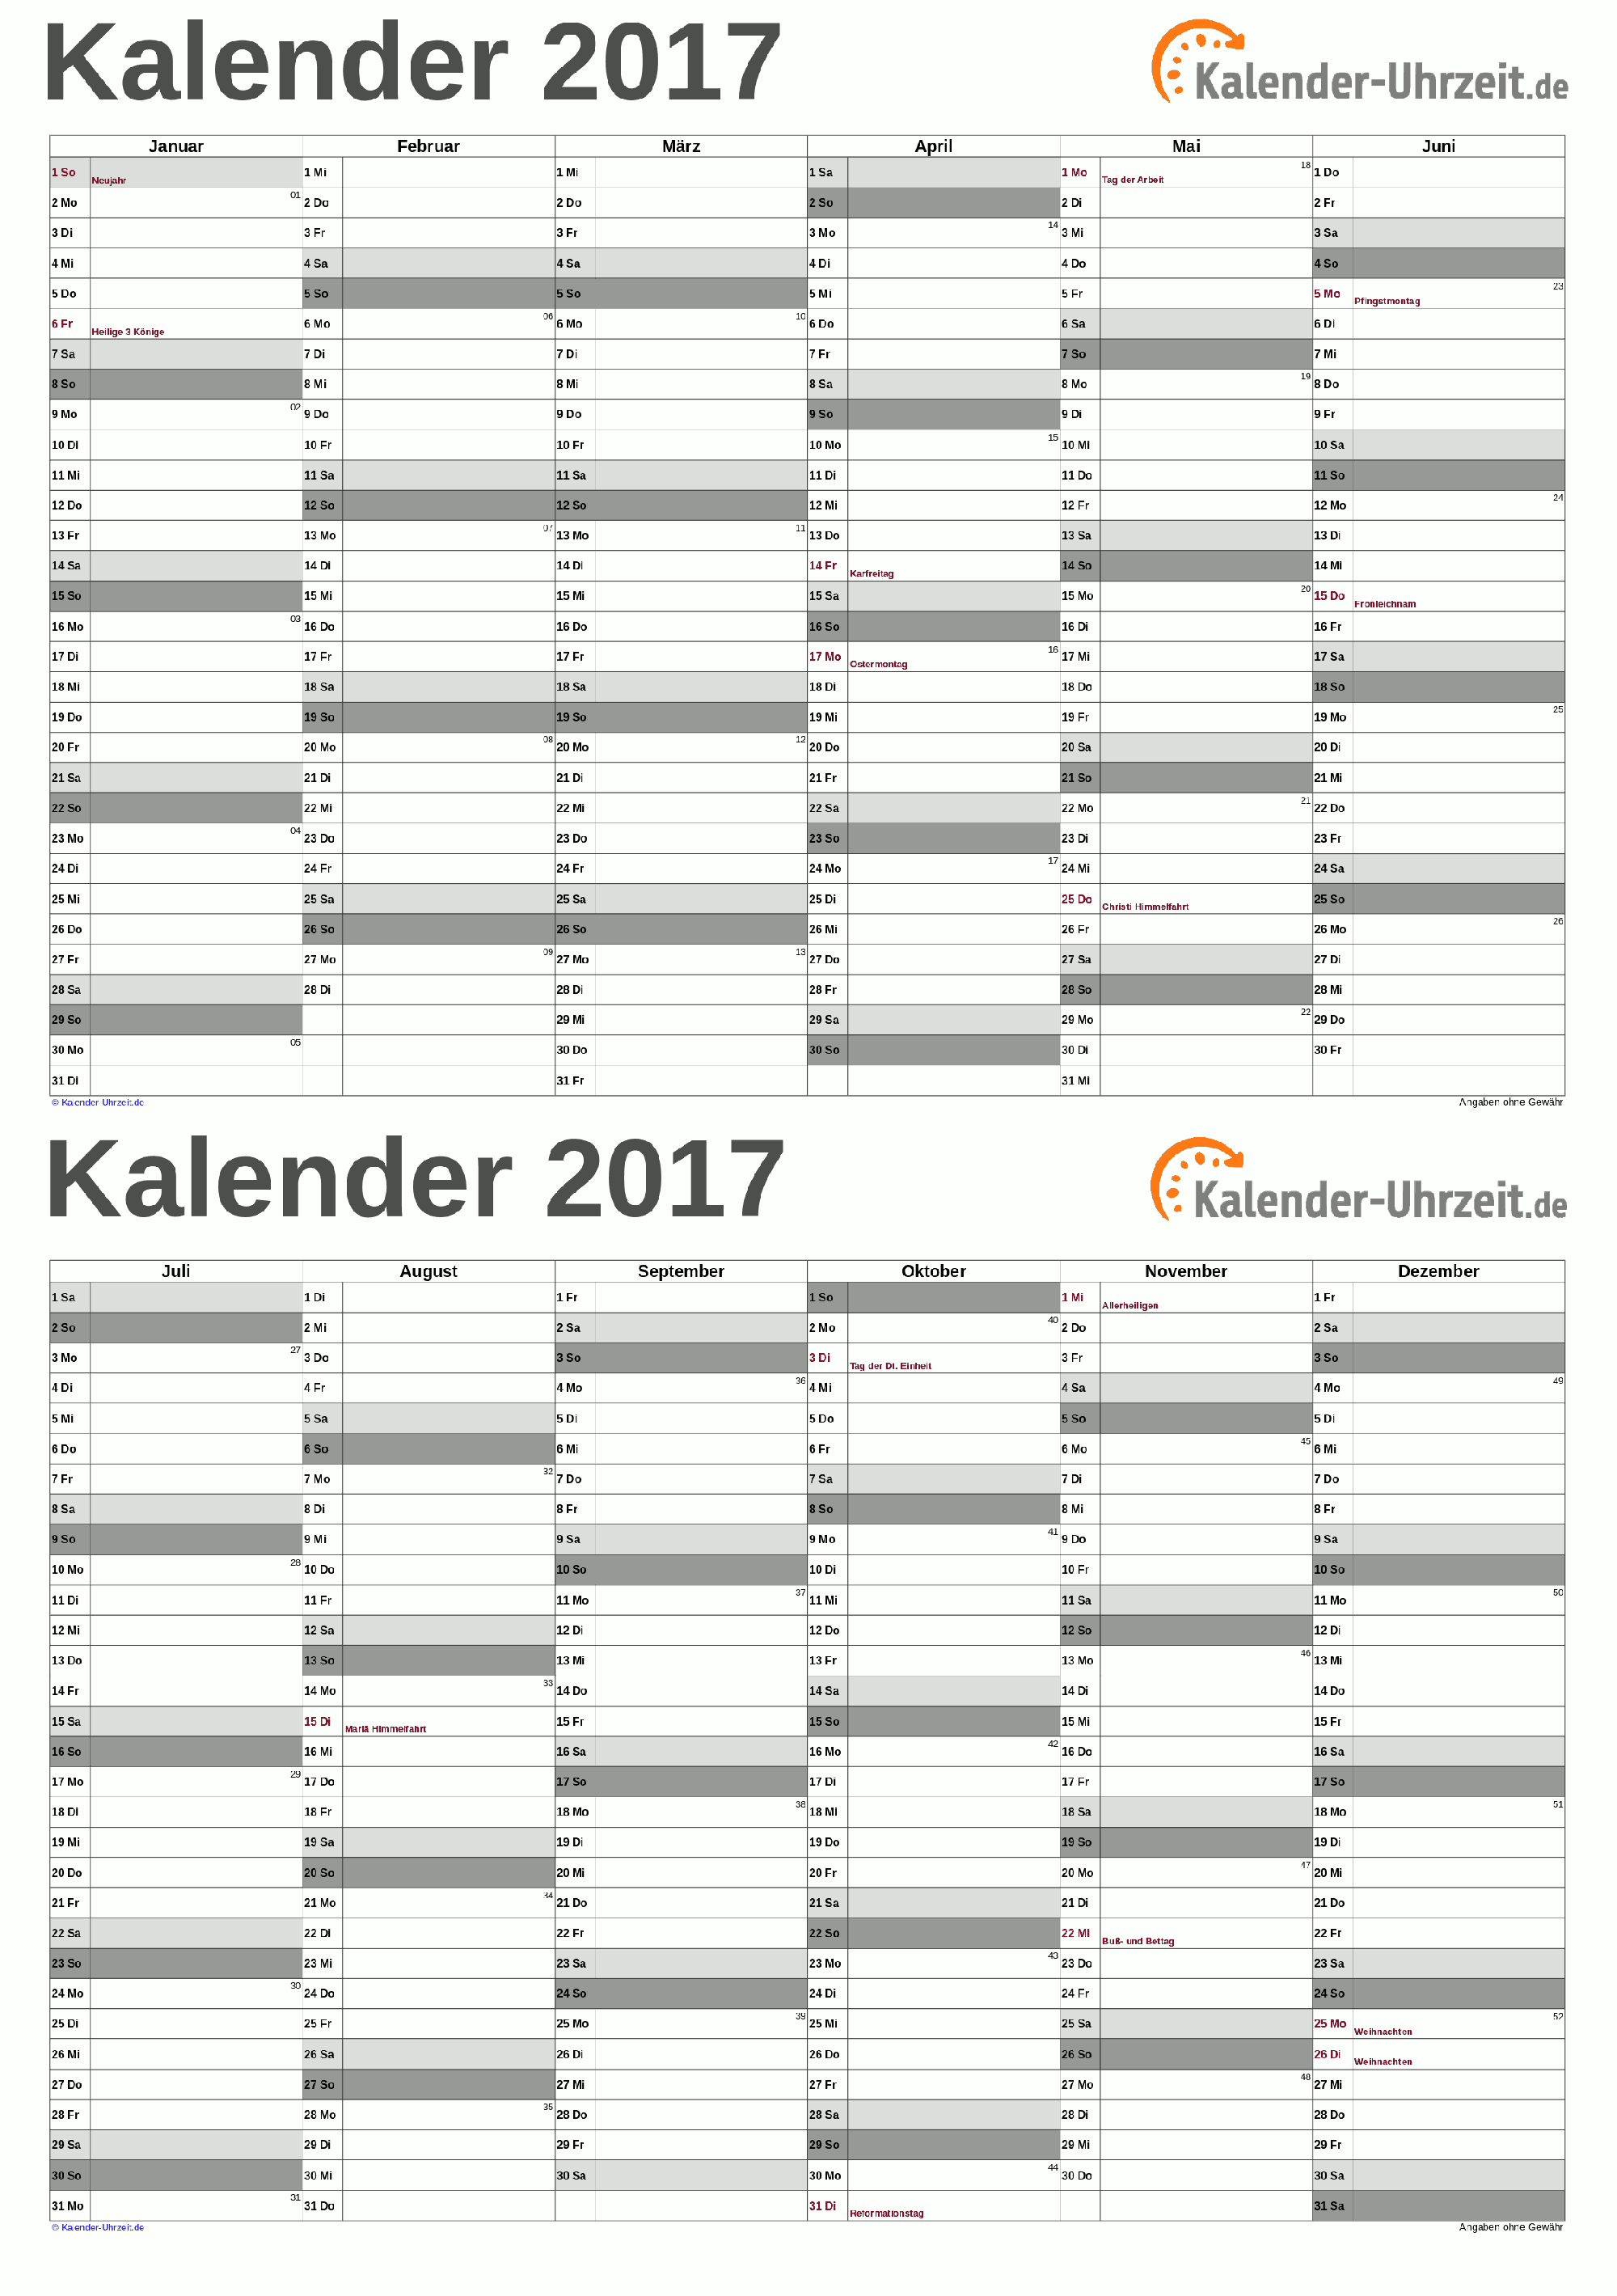 kalender 2017 a5 pdf vorlage grau kaluhr weitere kalender vorlagen 2017. Black Bedroom Furniture Sets. Home Design Ideas